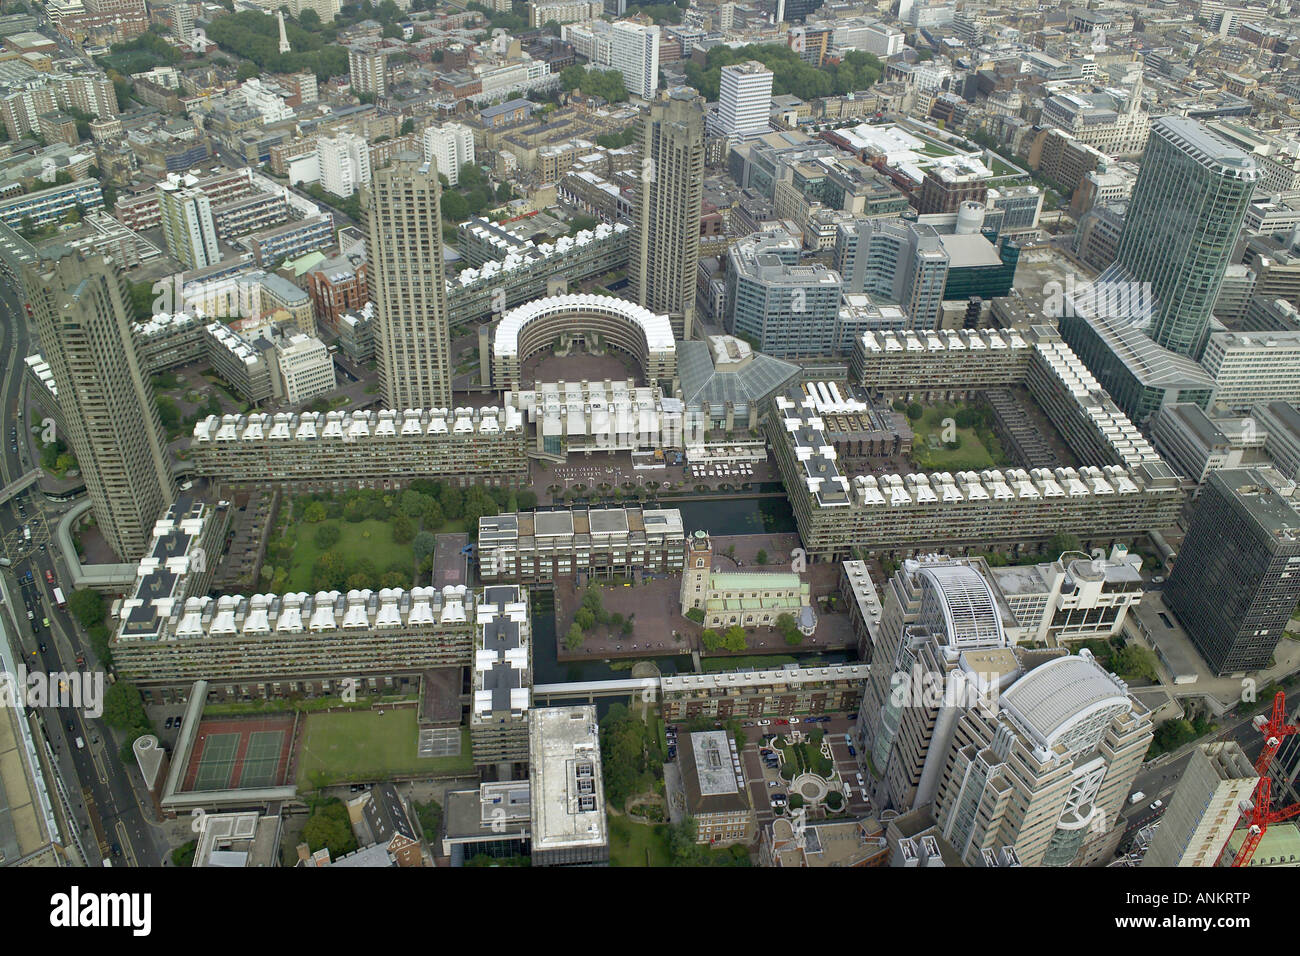 Aerial view of London's Barbican Arts and Conference Centre, featuring St Giles's Church and the City of London Stock Photo